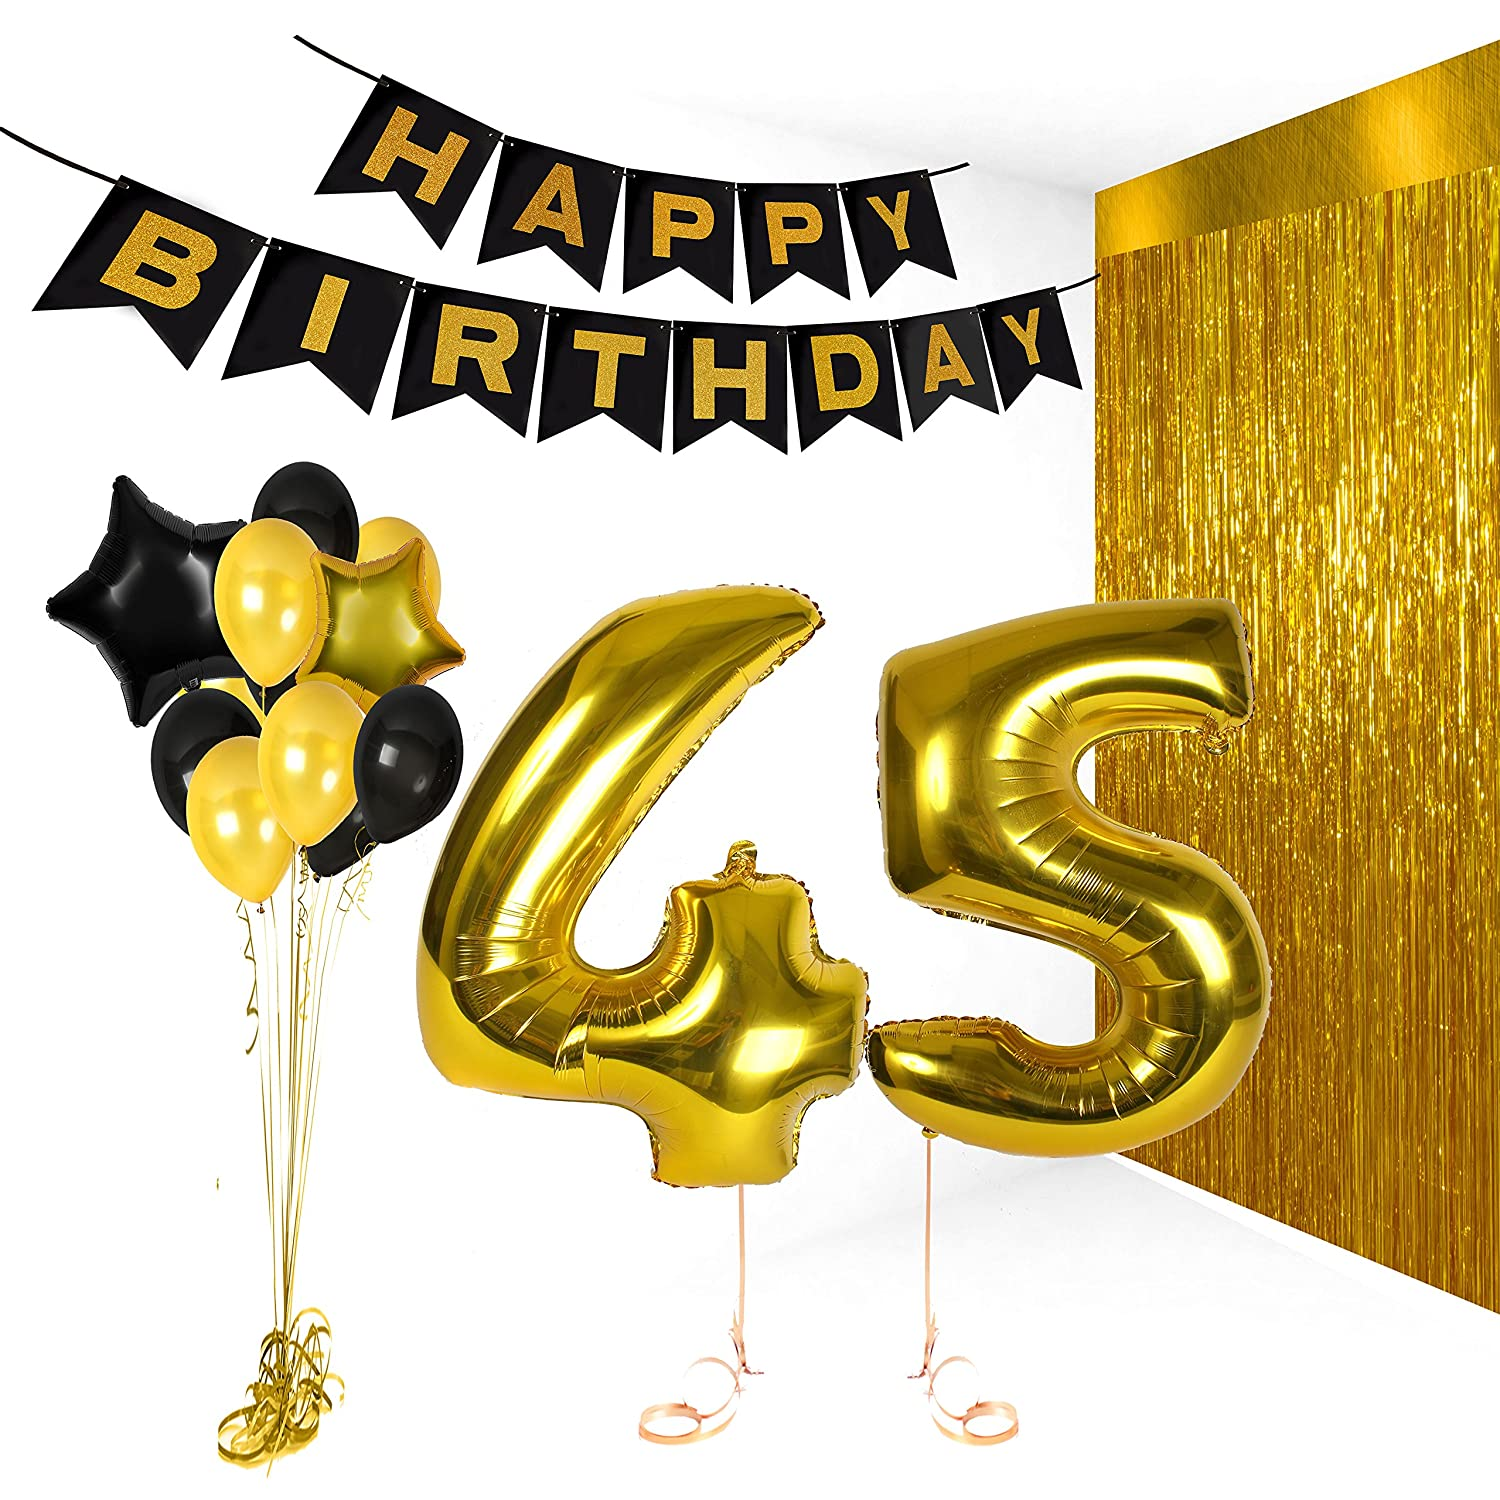 Amazon Treasures Gifted Happy Birthday 45th Party Decorations Gold Black Balloons Banner With Foil Fringe Curtain Supplies Kit Toys